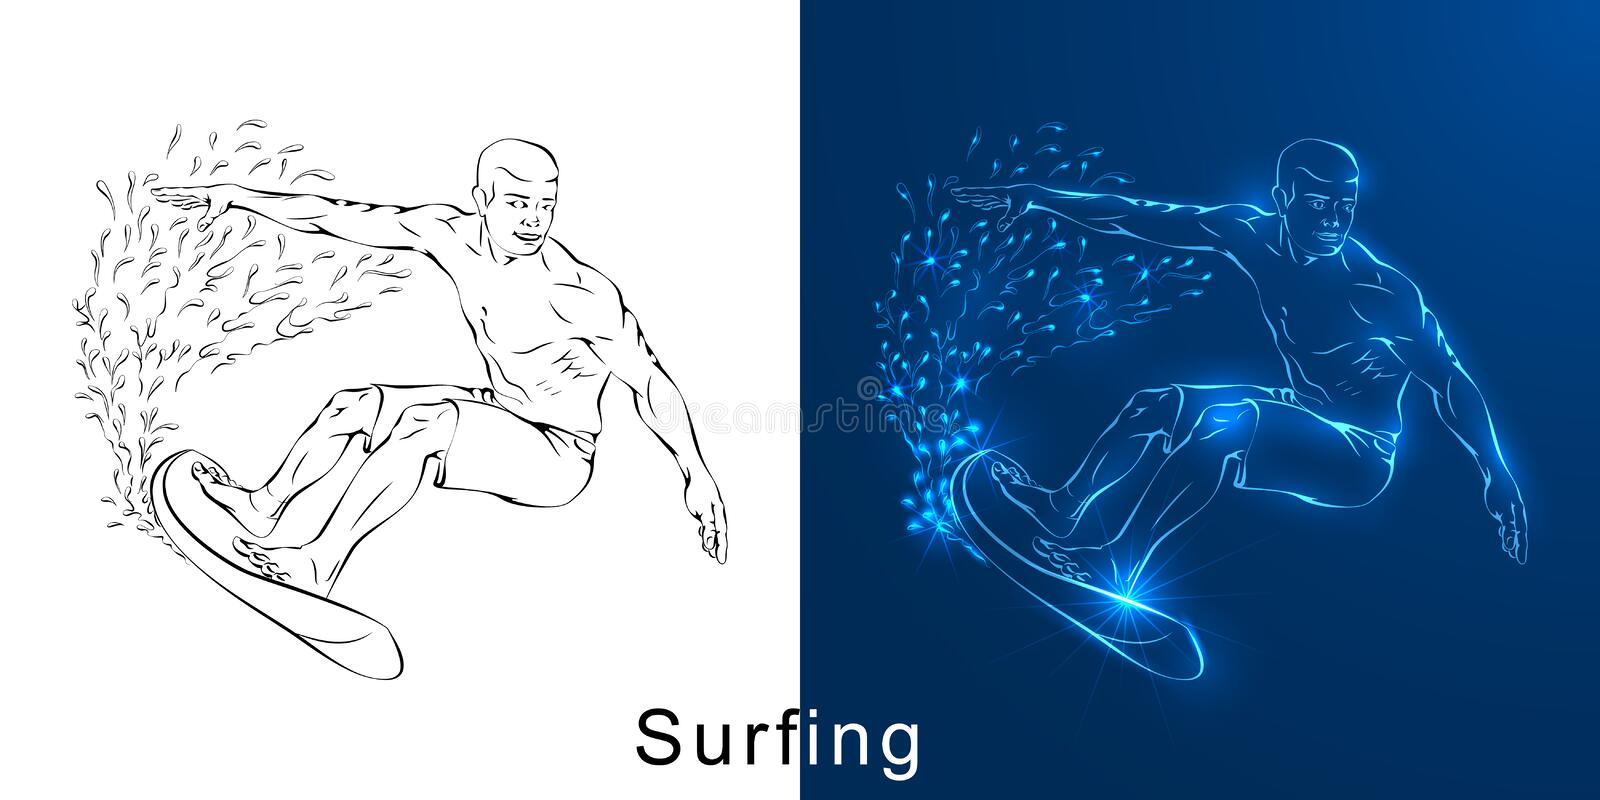 The linear drawing of the surfer on a board stock illustration